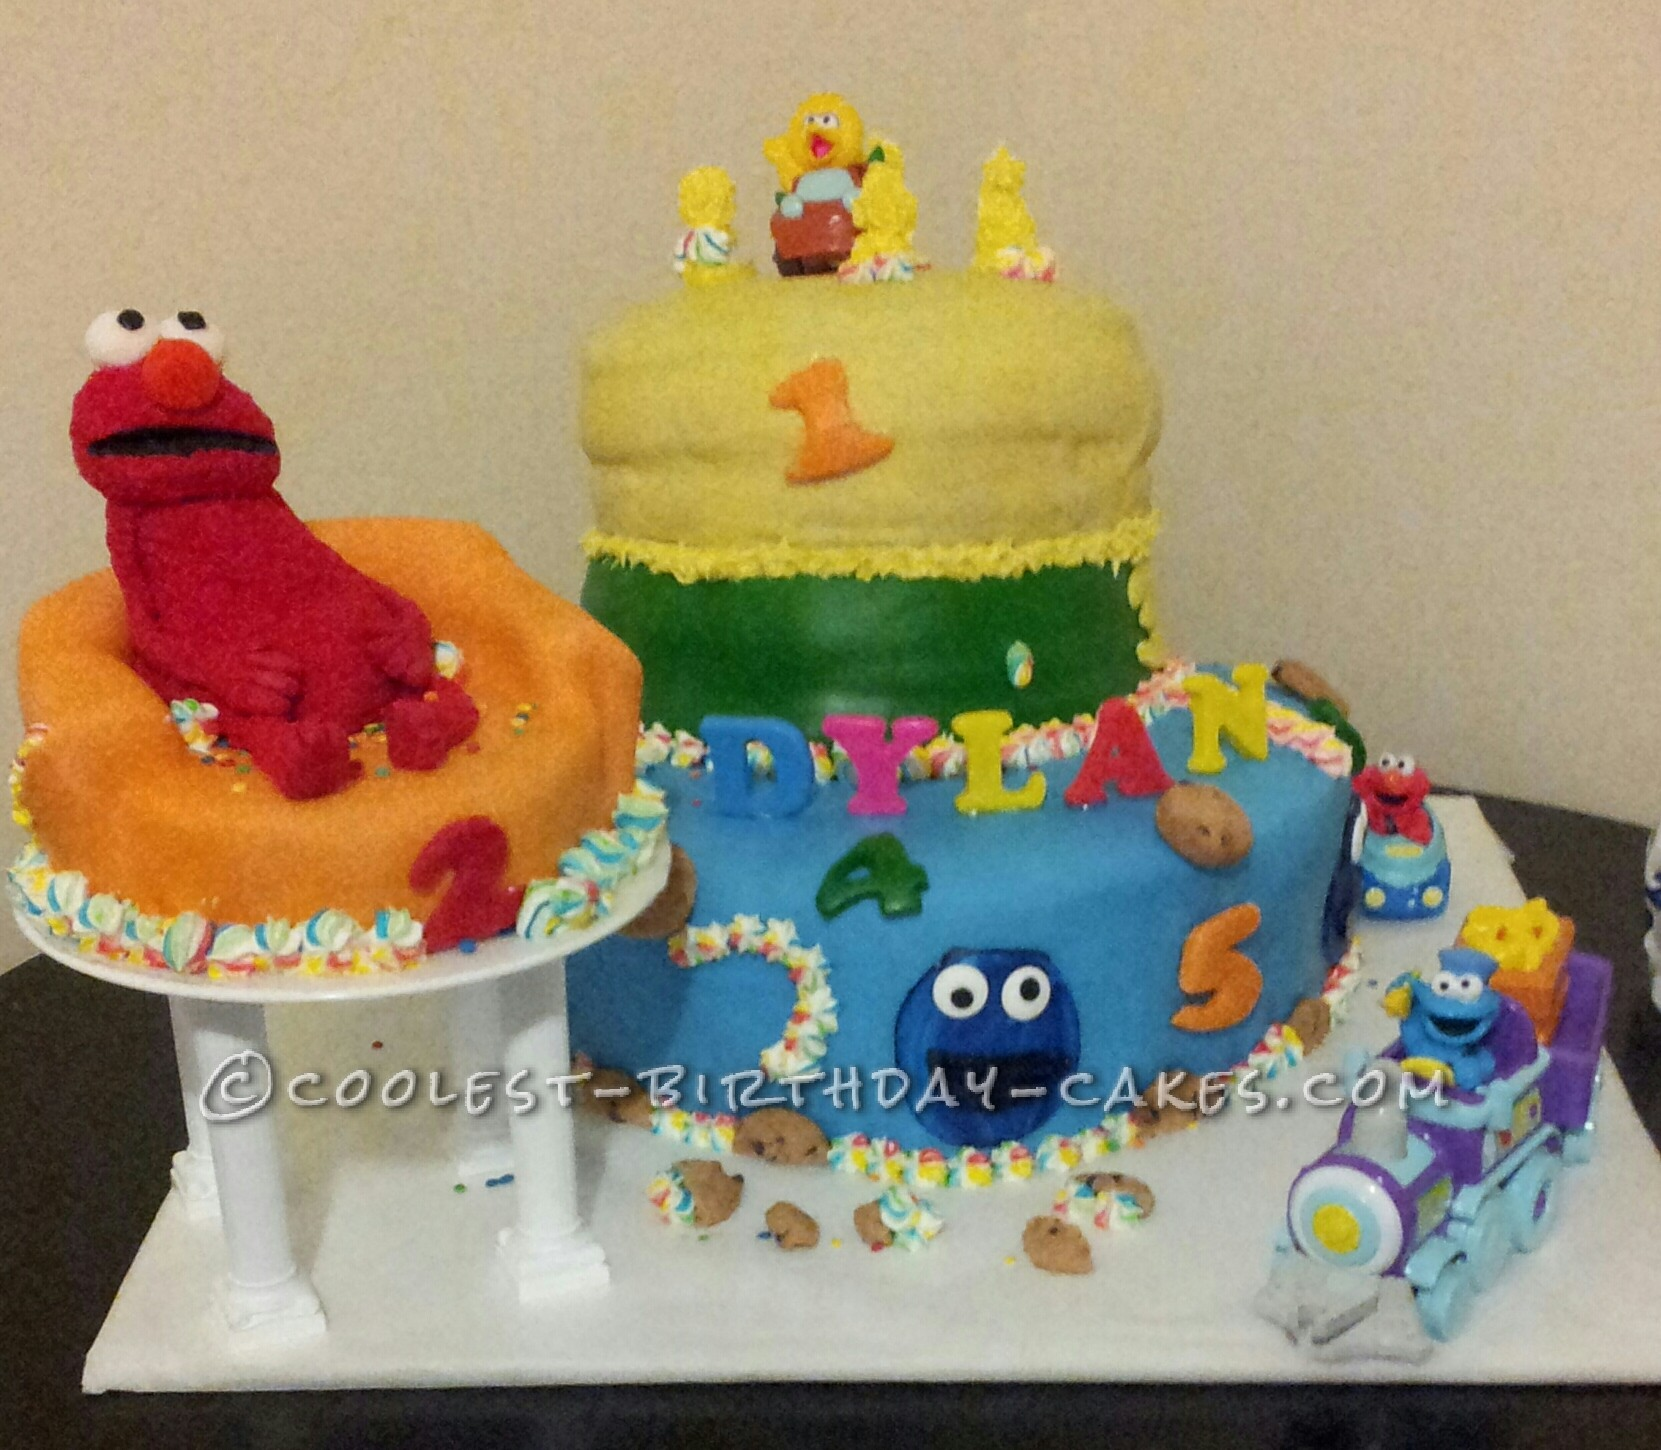 Birthday cake images for 2 year old boy